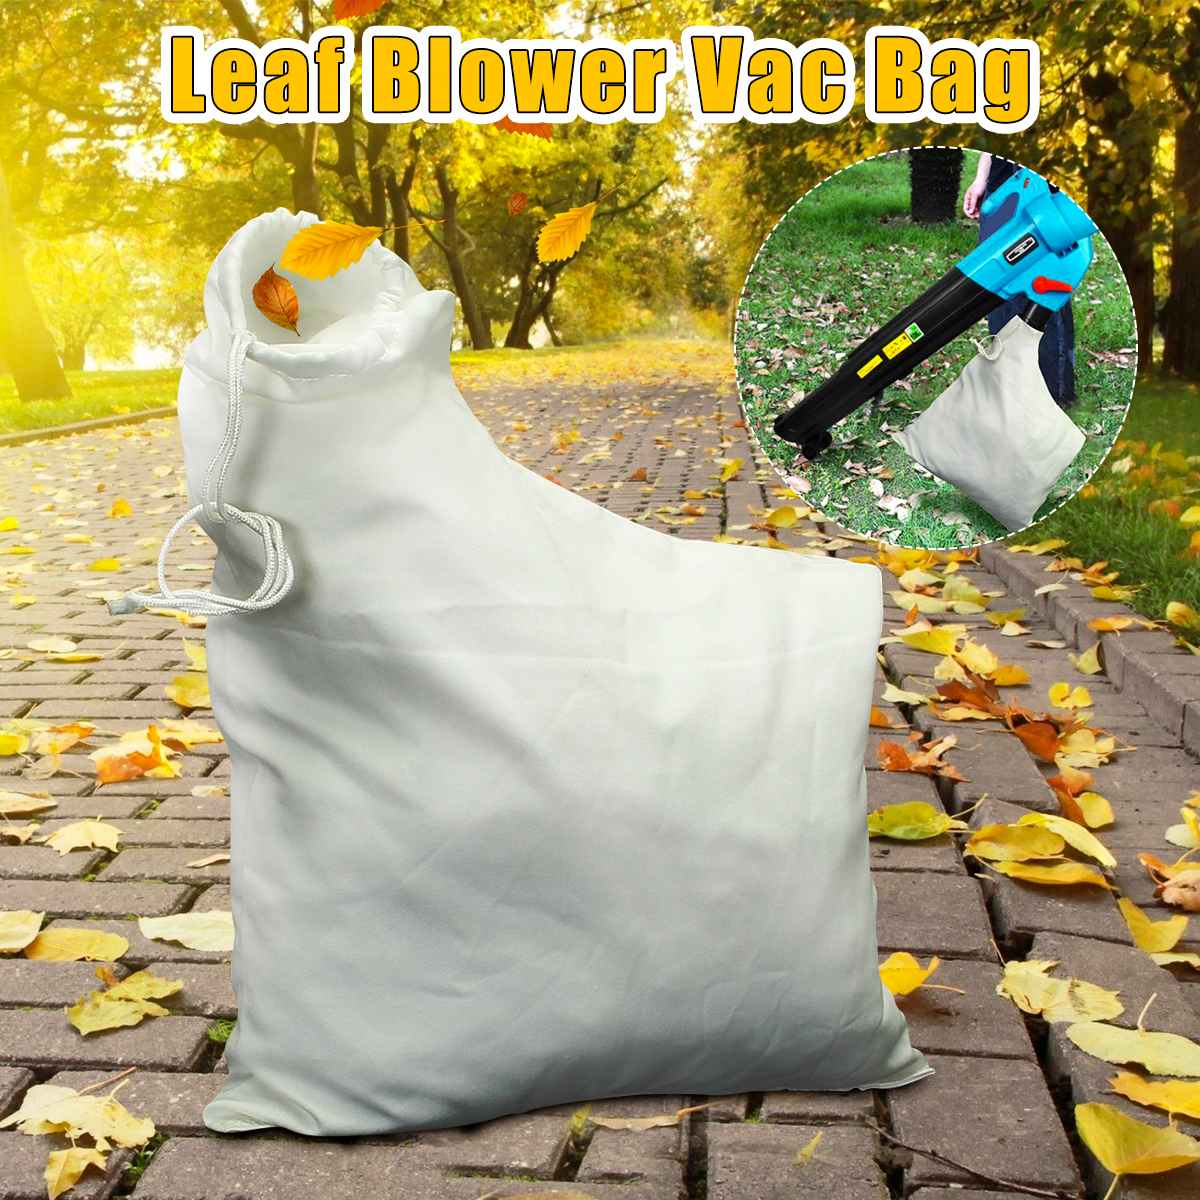 Leaf Blower Vacuum Bag Fit For Weed Eater Barracuda 2595 Mulcher Lawn Yard Shredder Garden Tool Storage Bag Accessories